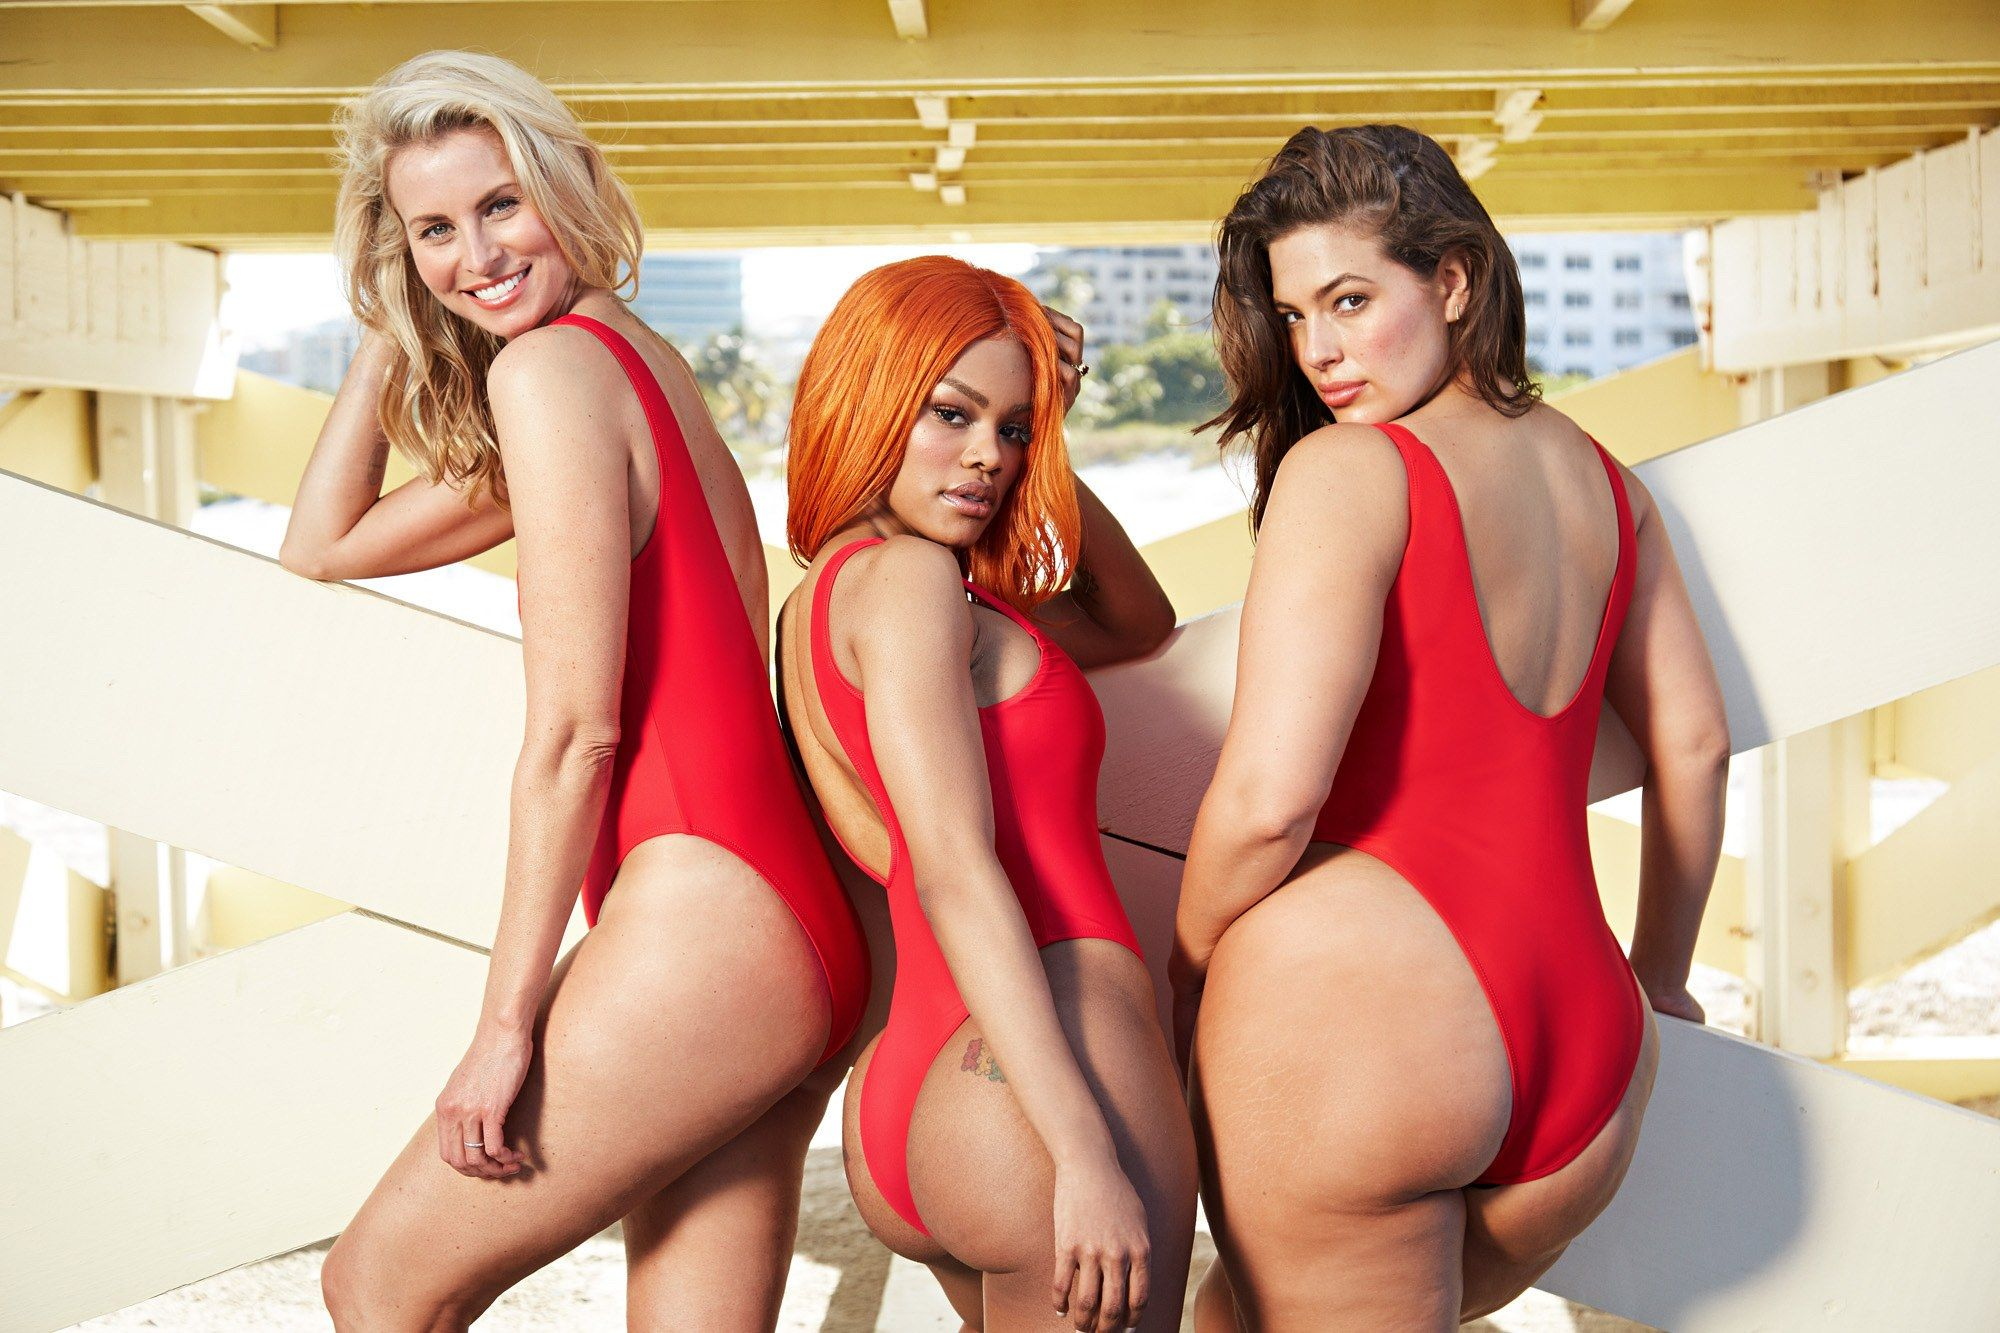 Baywatch Badpak Kopen.You Can Now Get The Iconic Baywatch Swimsuit In Plus Sizes